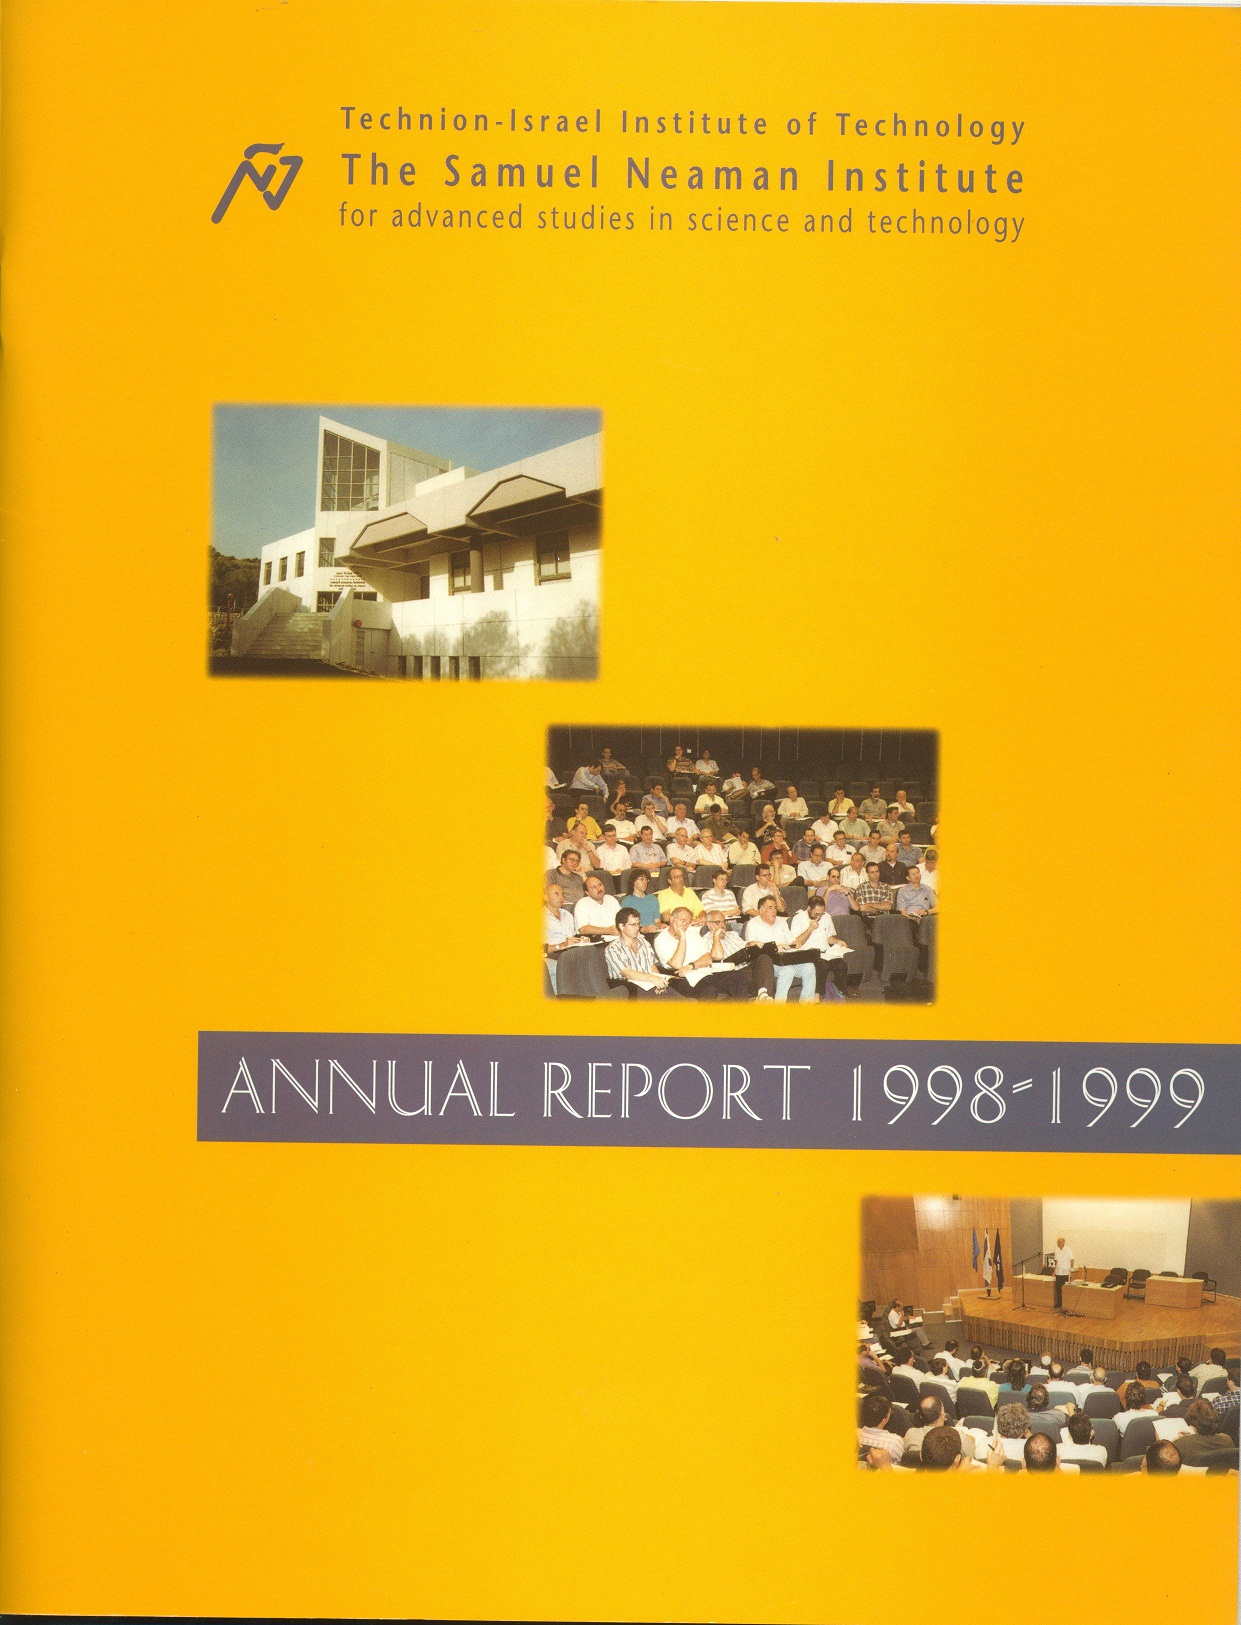 Annual Report 1998-1999 Samuel Neaman Institute